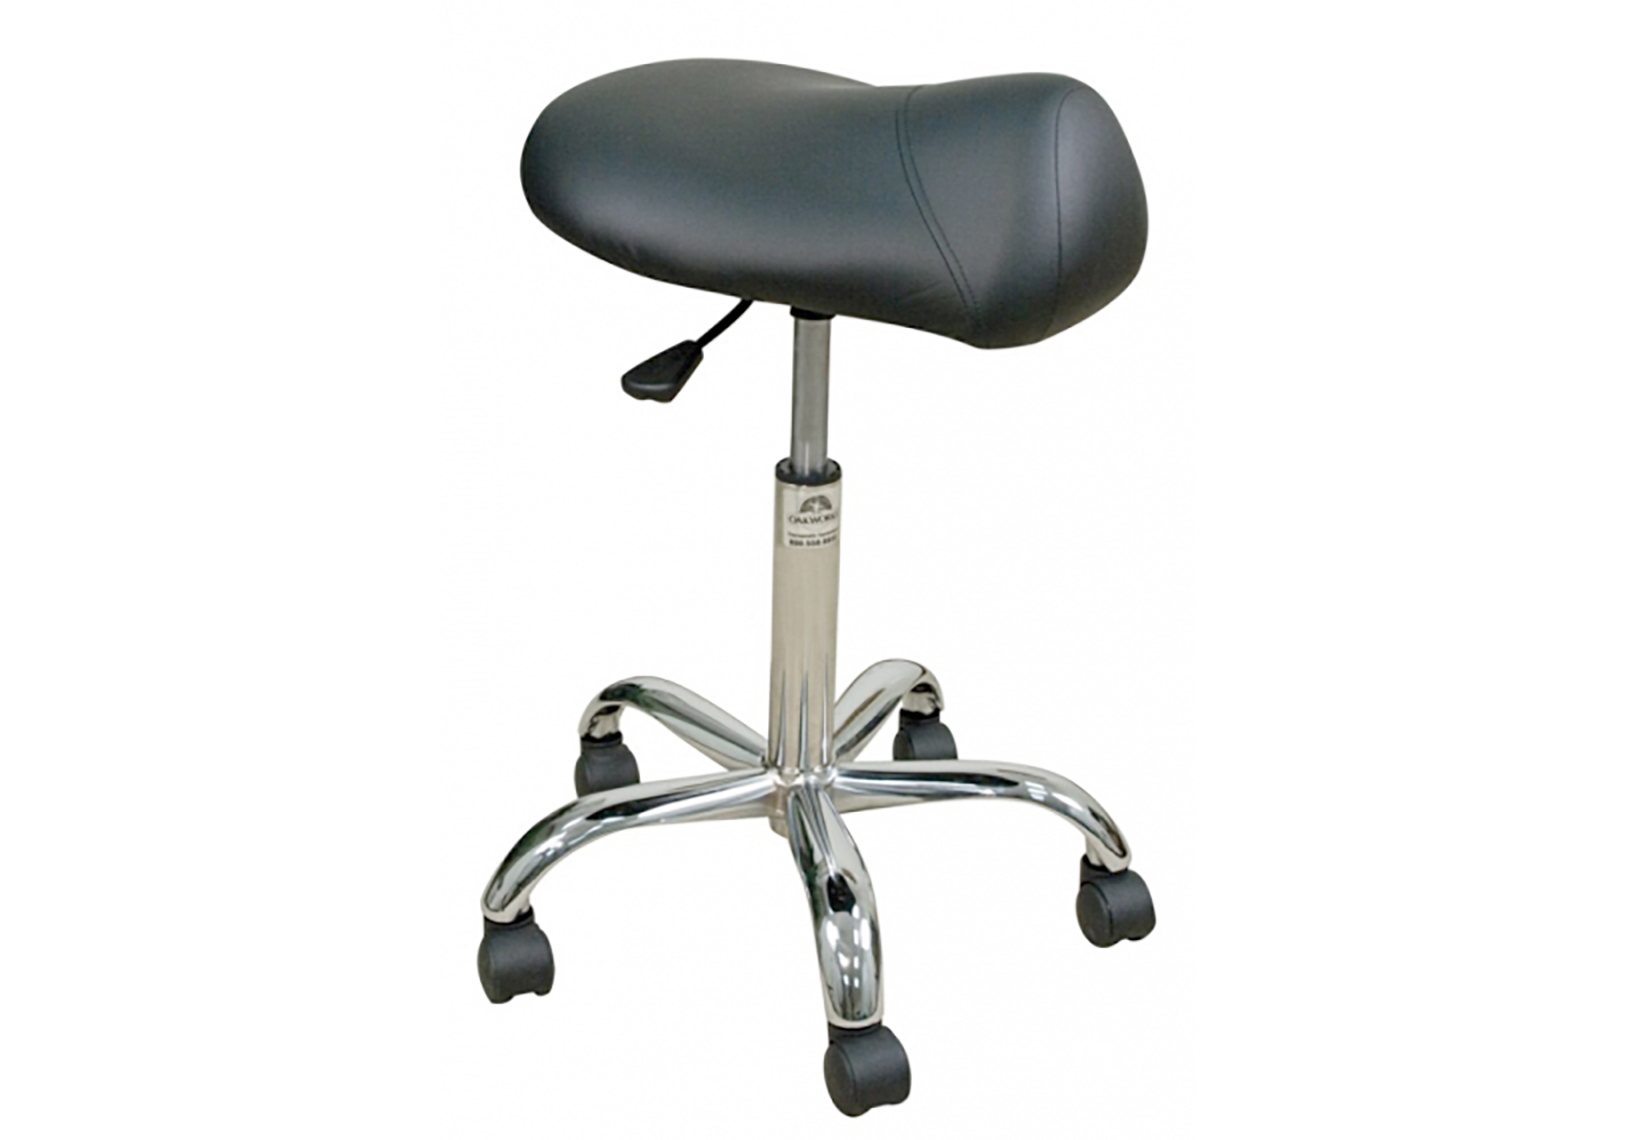 Professional Stool with Saddle Seat - High Height Range